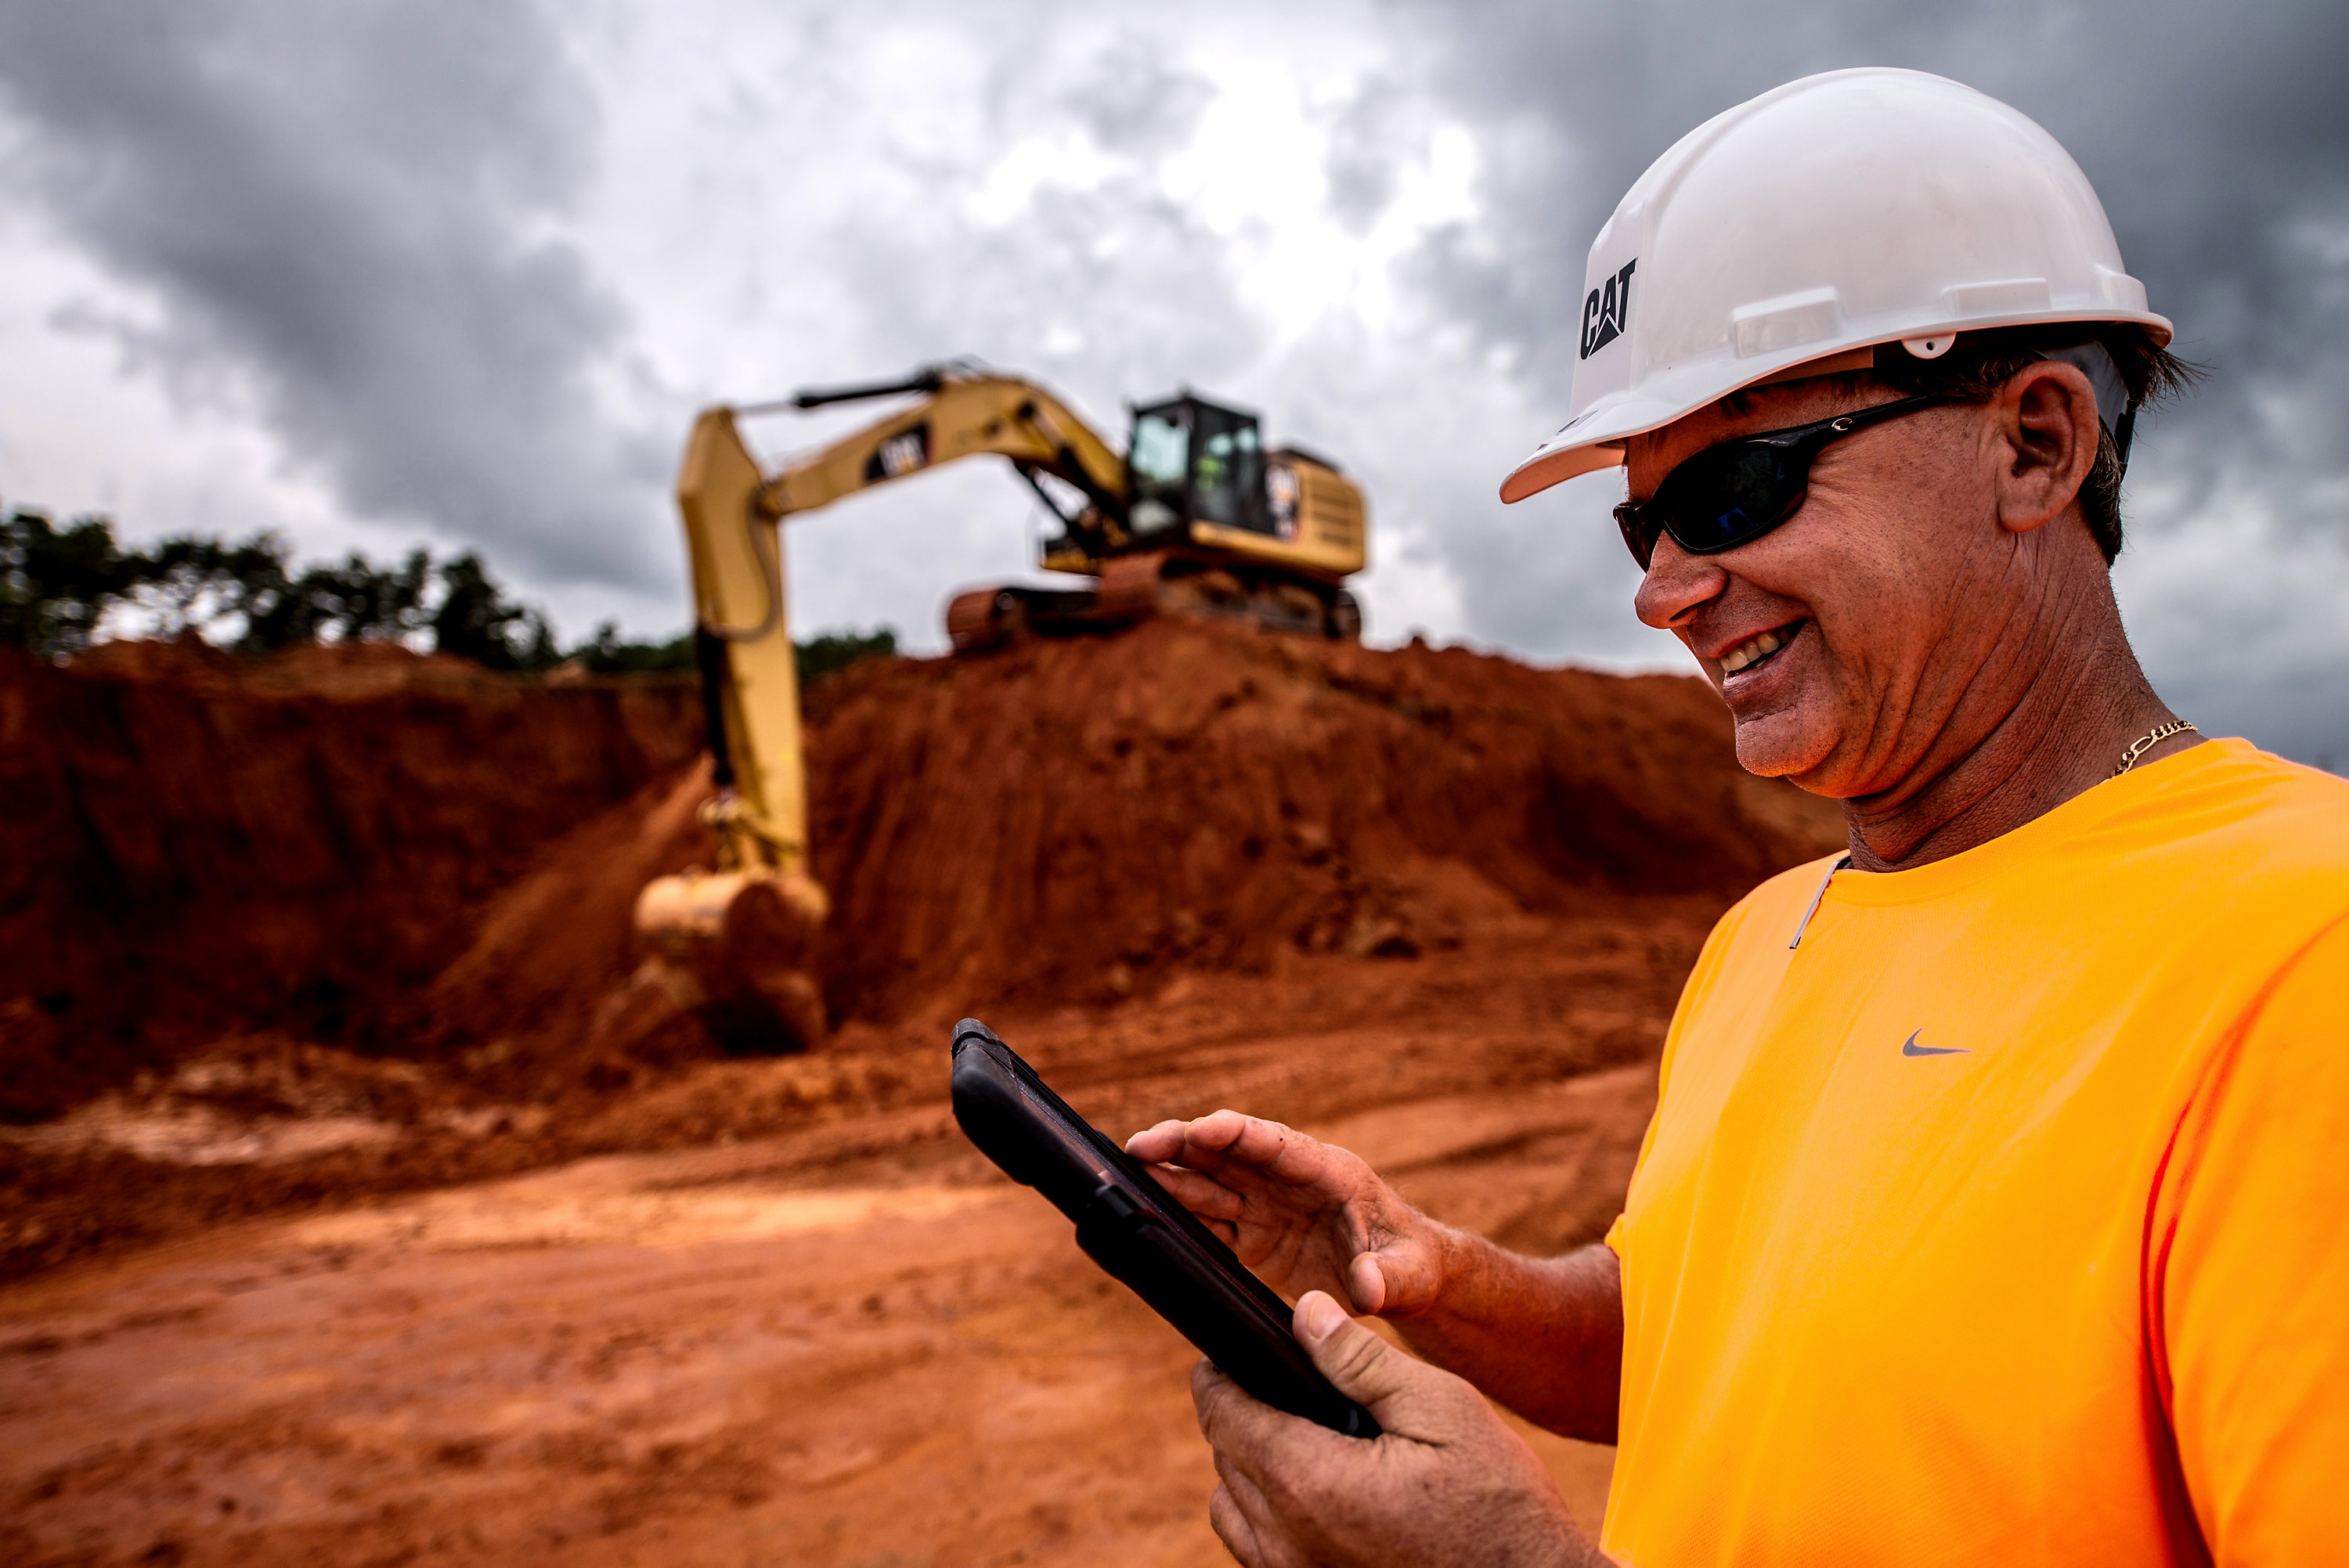 Customer using ipad on jobsite with excavator working in the background